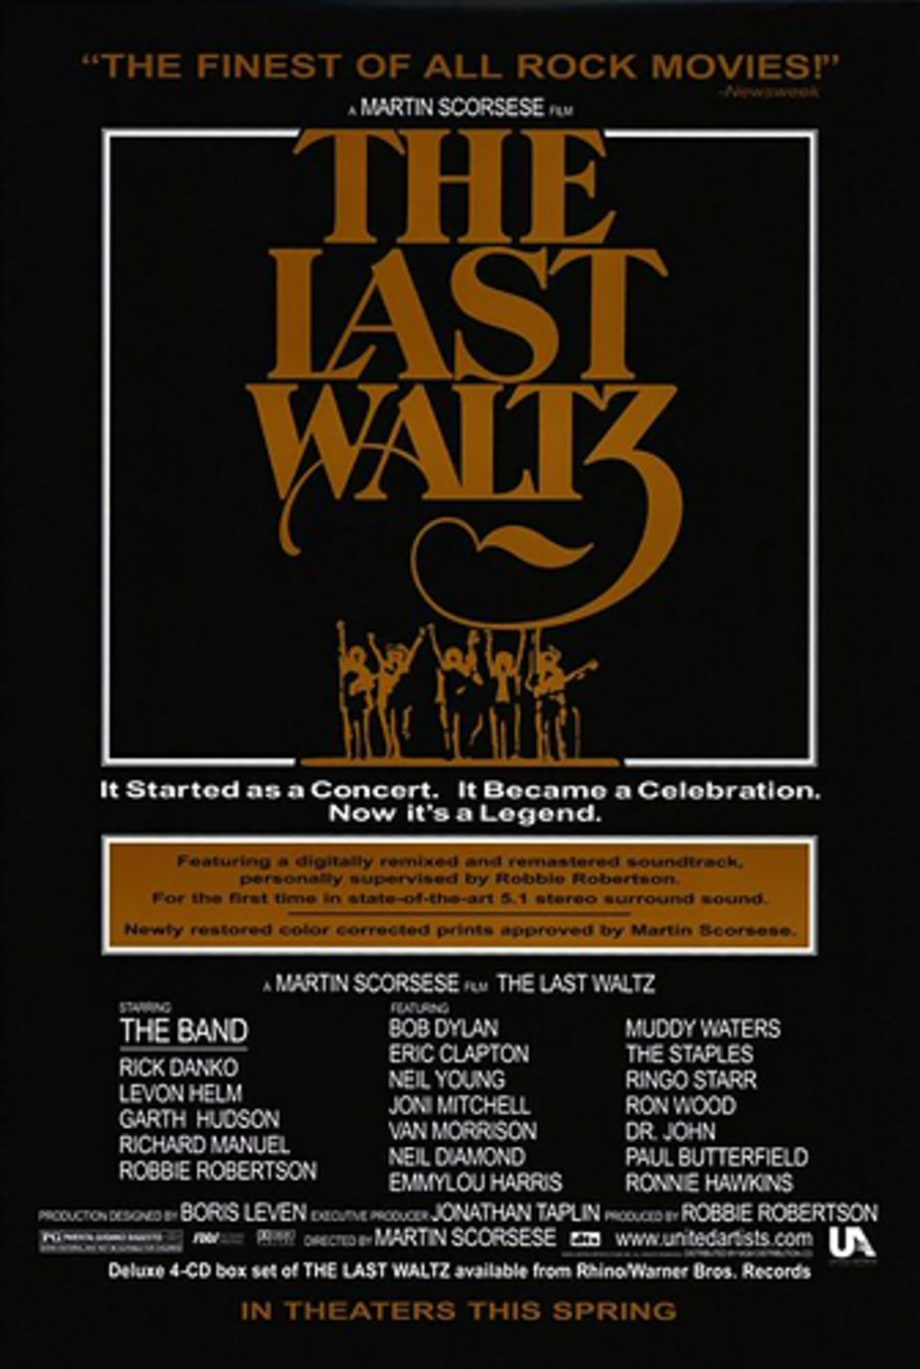 1. 'The Last Waltz'